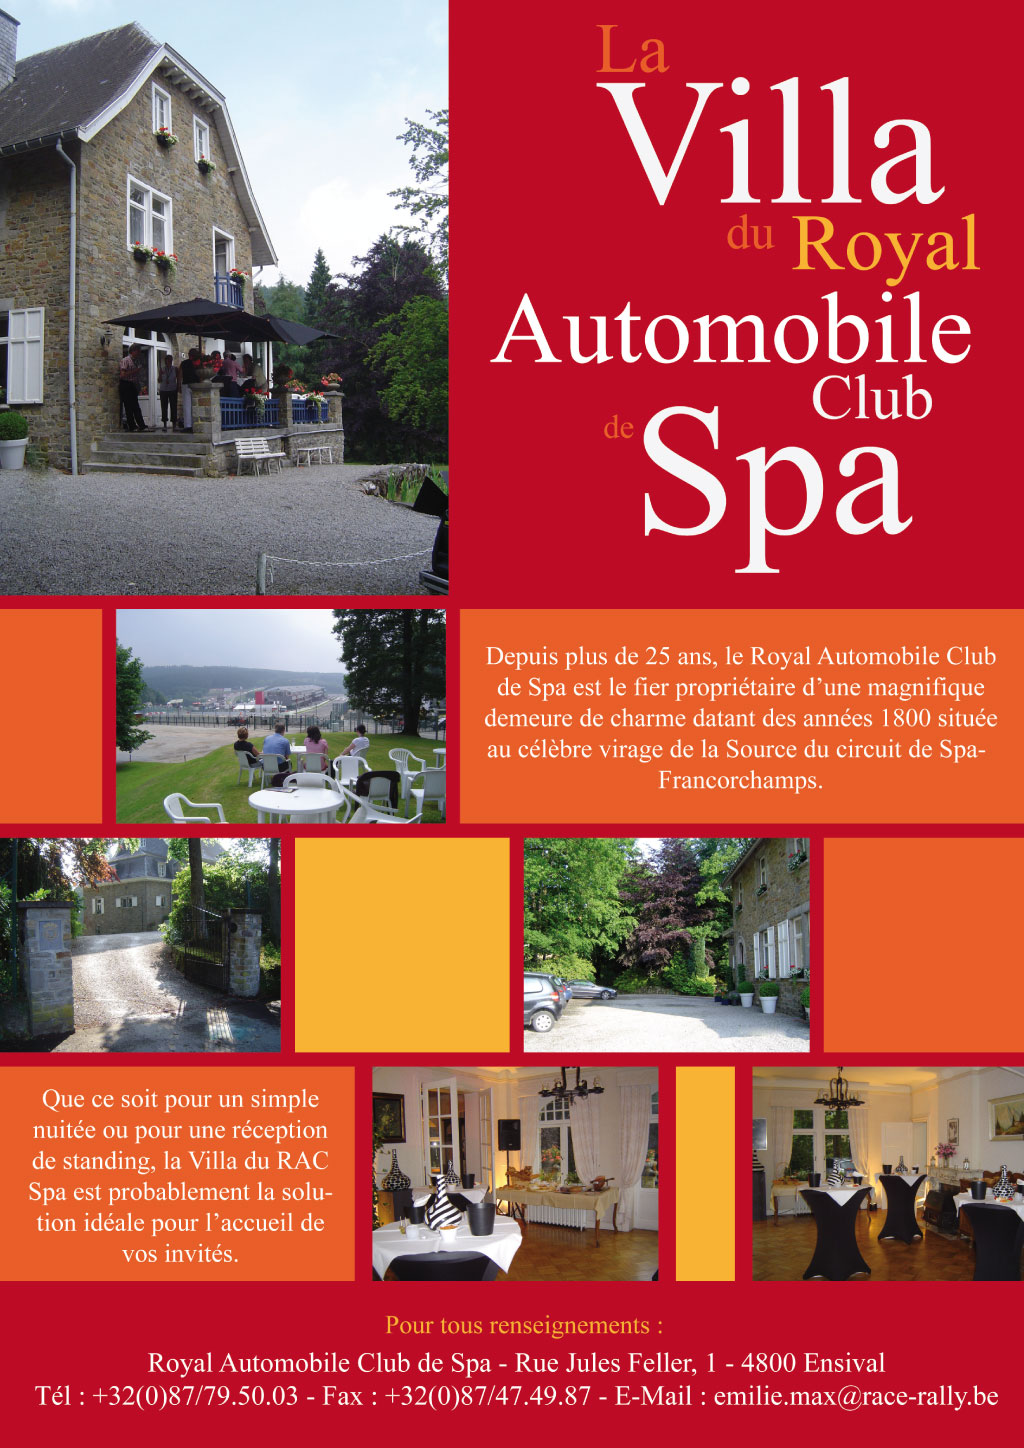 villa du royal automobile club de Spa